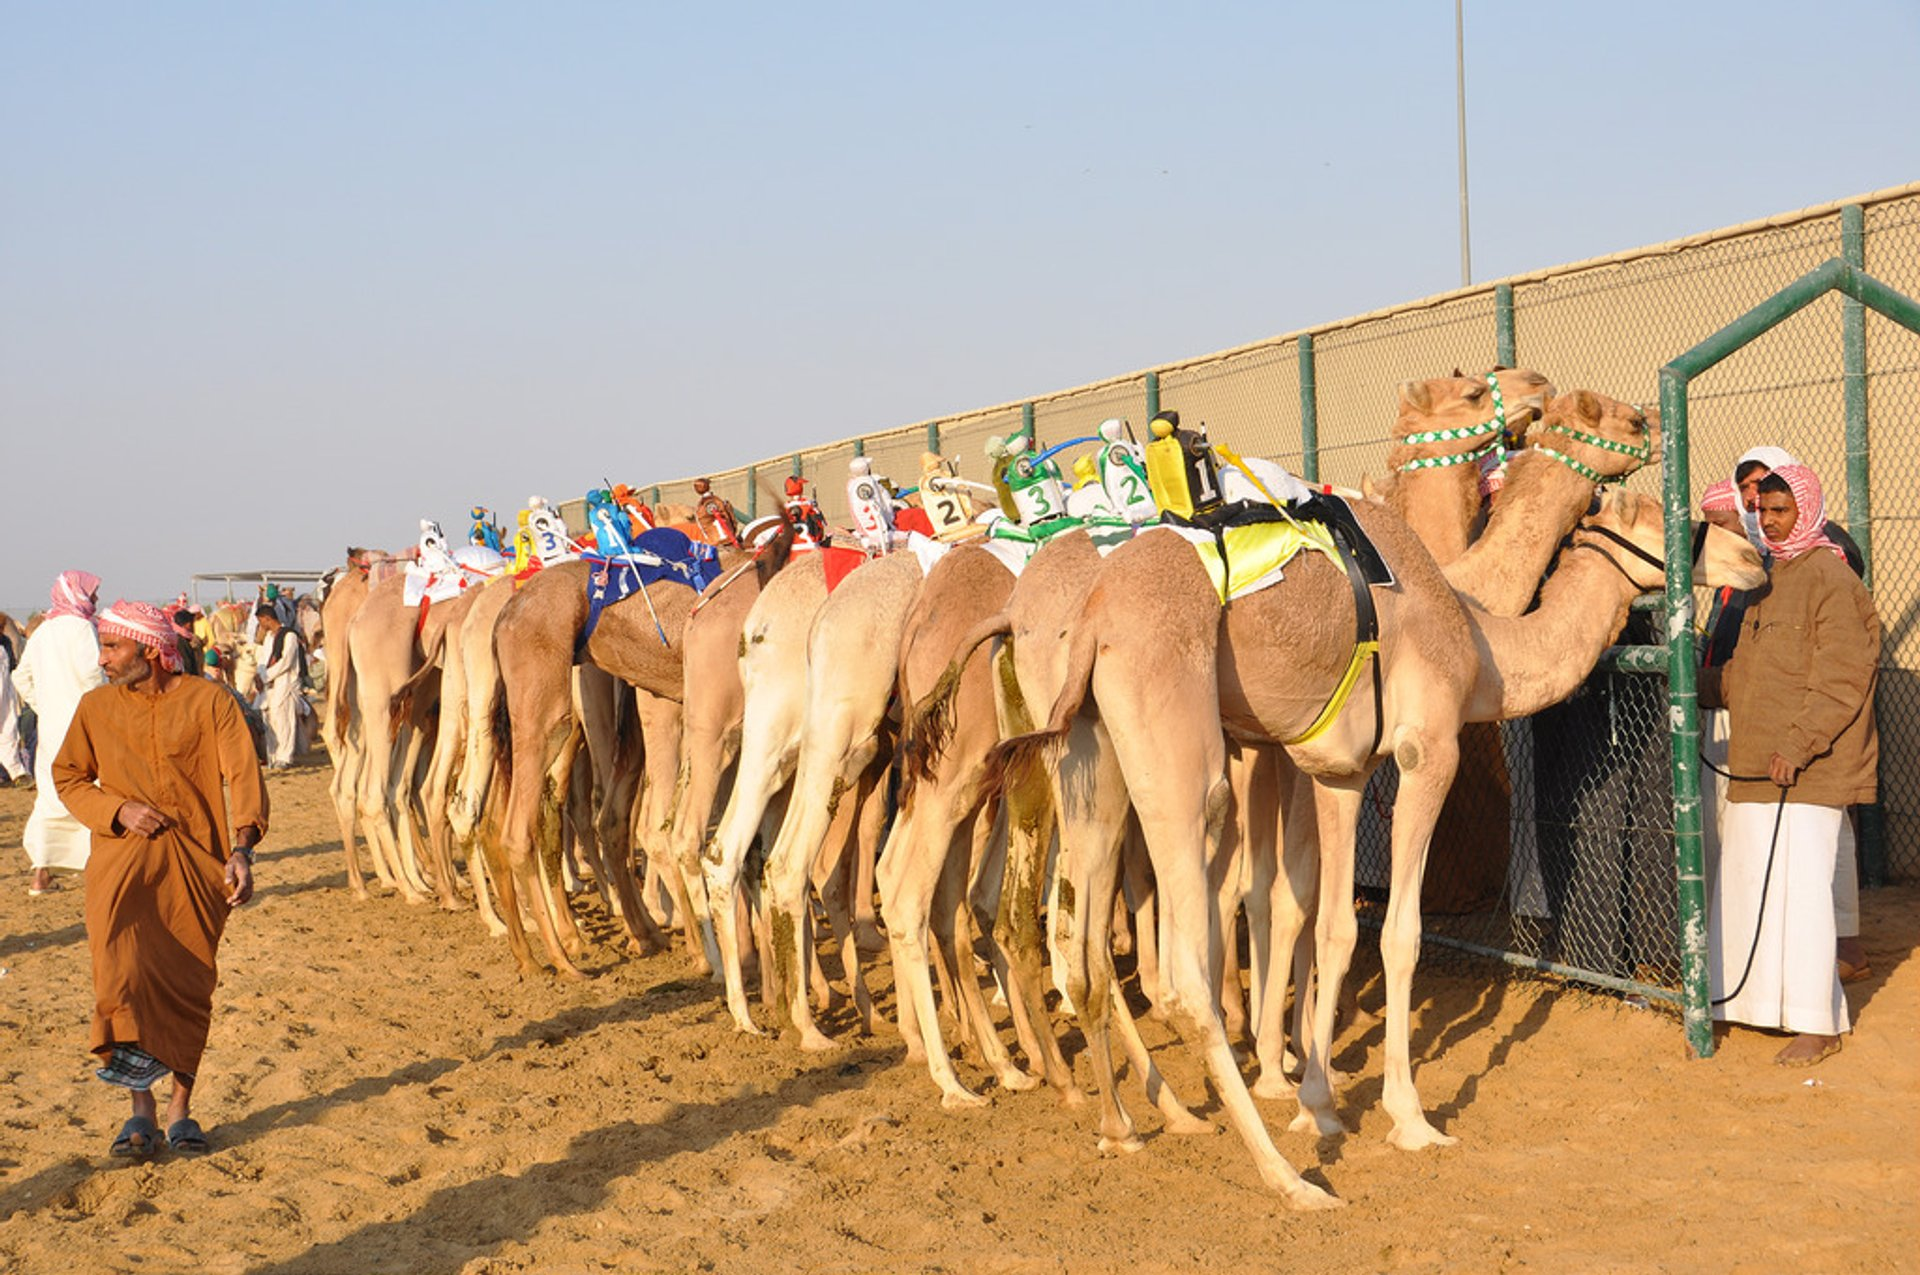 Best time to see Camel Racing Season in Dubai 2020